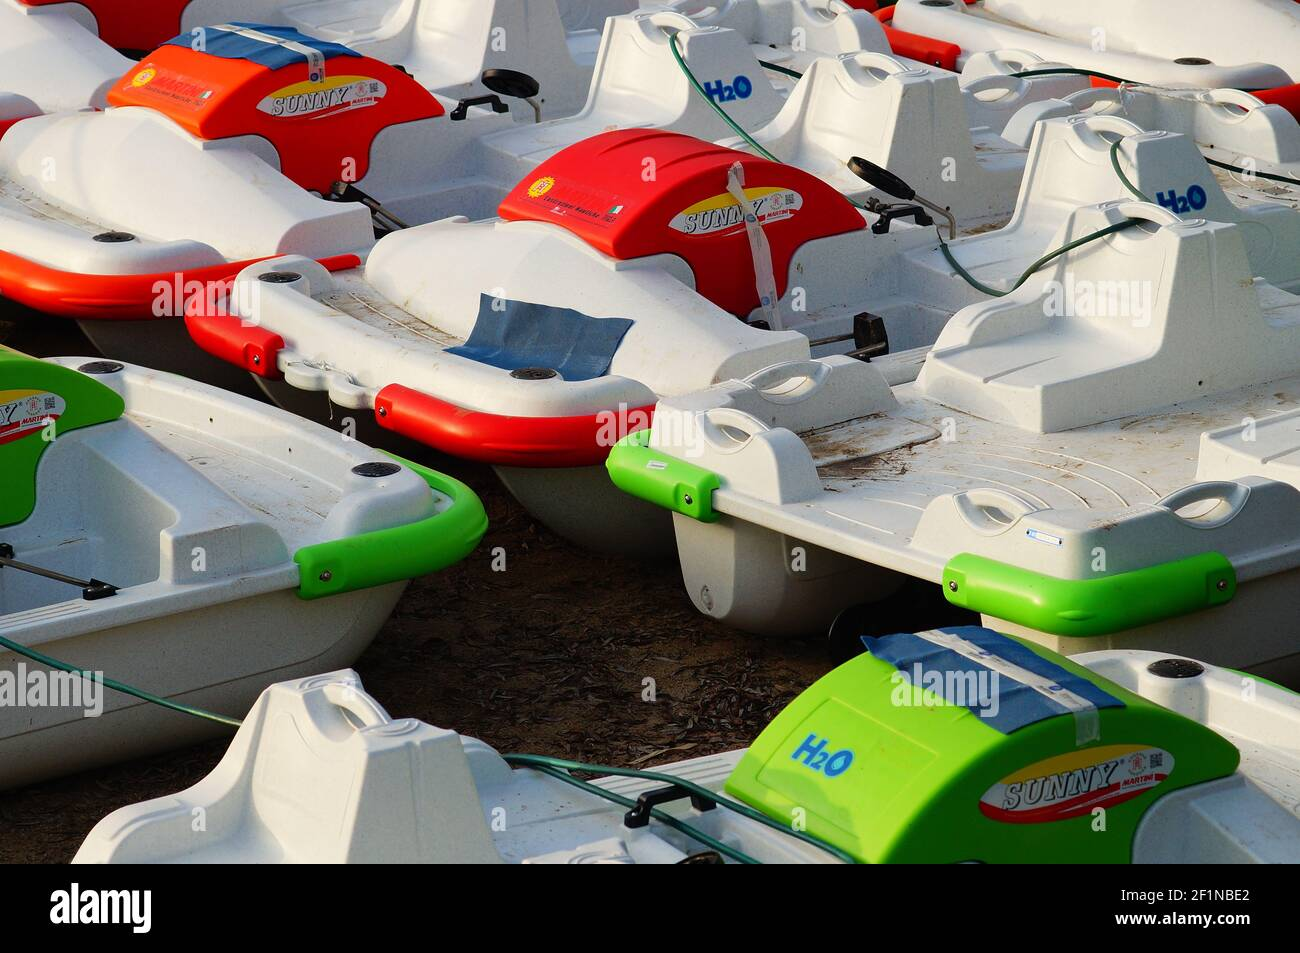 MARBURG, GERMANY - Mar 03, 2021: Pedal boats are ready for the season on the Lahn river in Marburg, Germany. In March 2021 it is still unclear how the Stock Photo